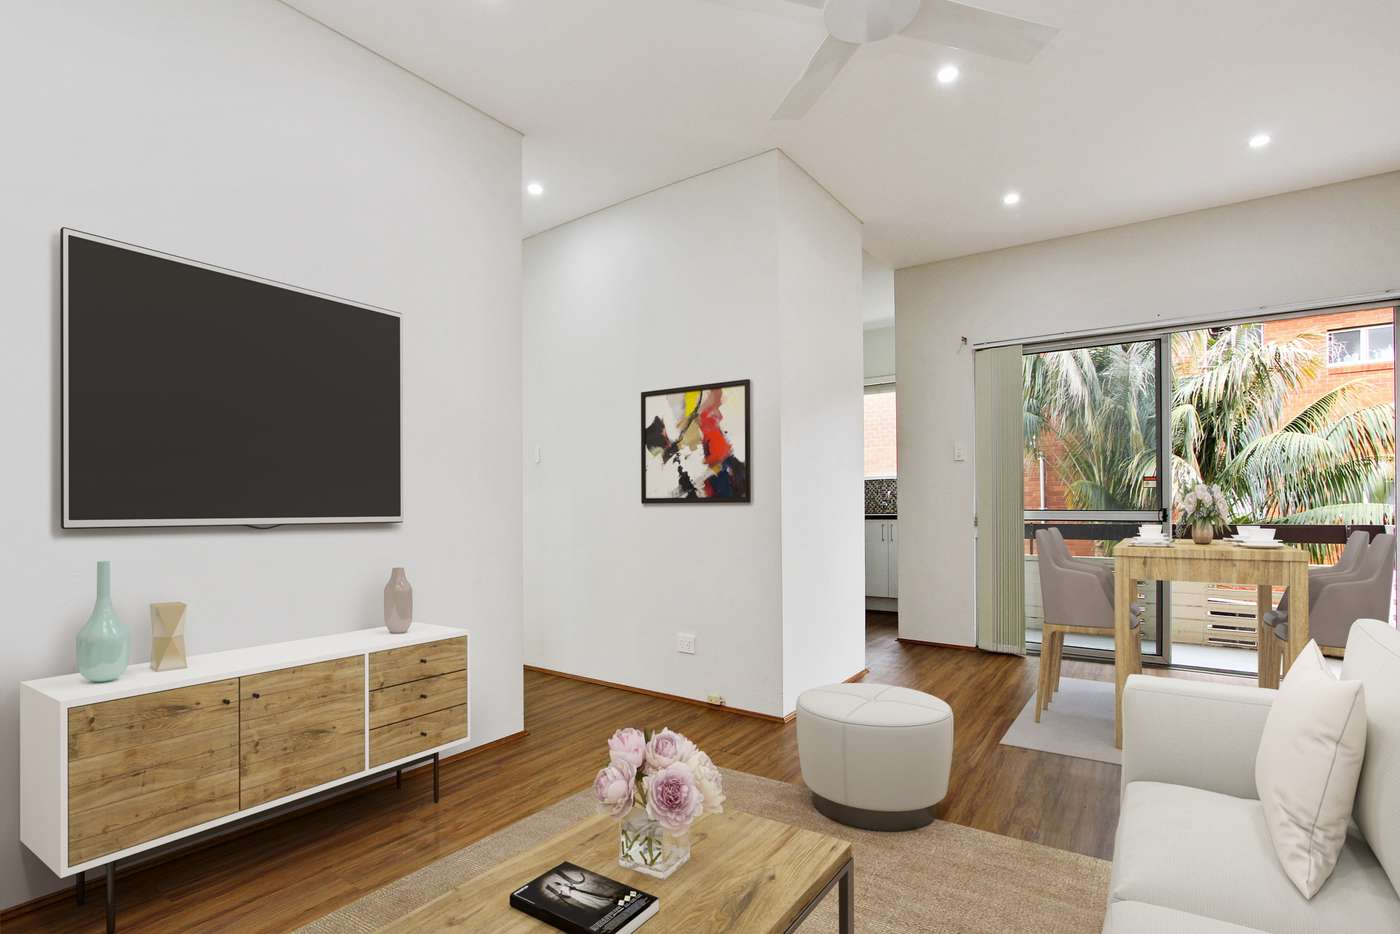 Main view of Homely apartment listing, 17/31-33 Villiers Street, Rockdale NSW 2216